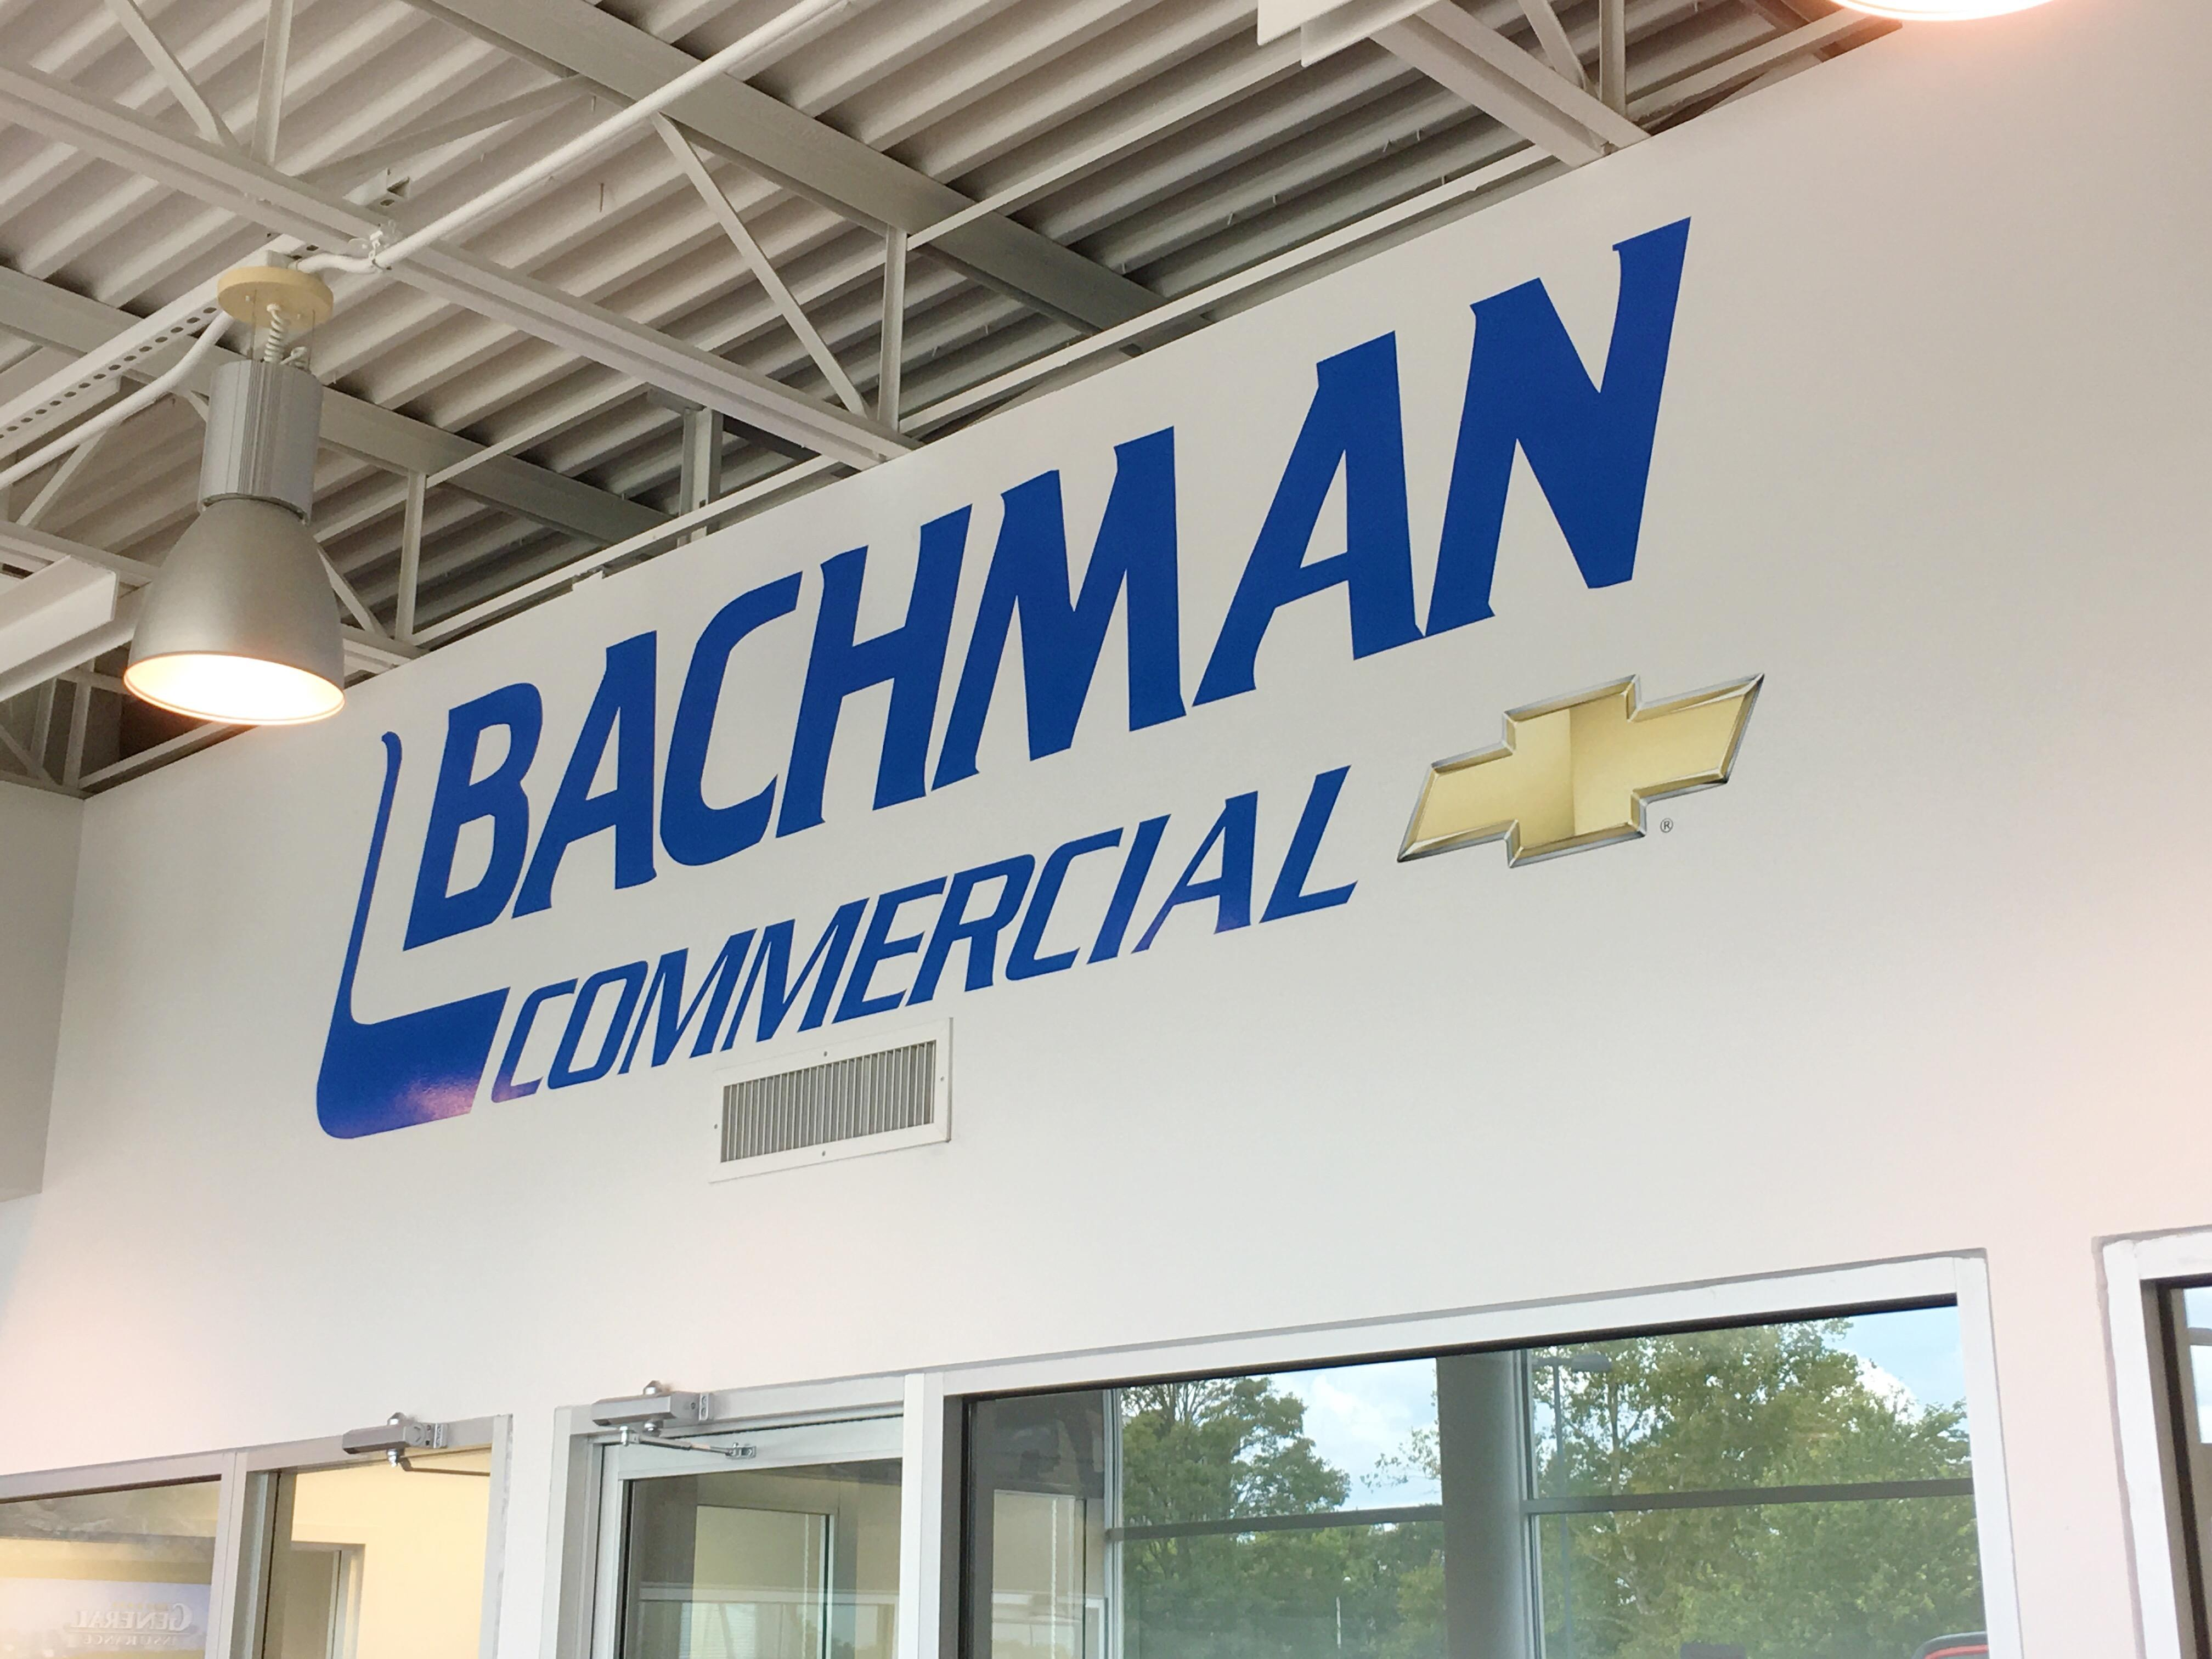 Bachman Commercial image 4